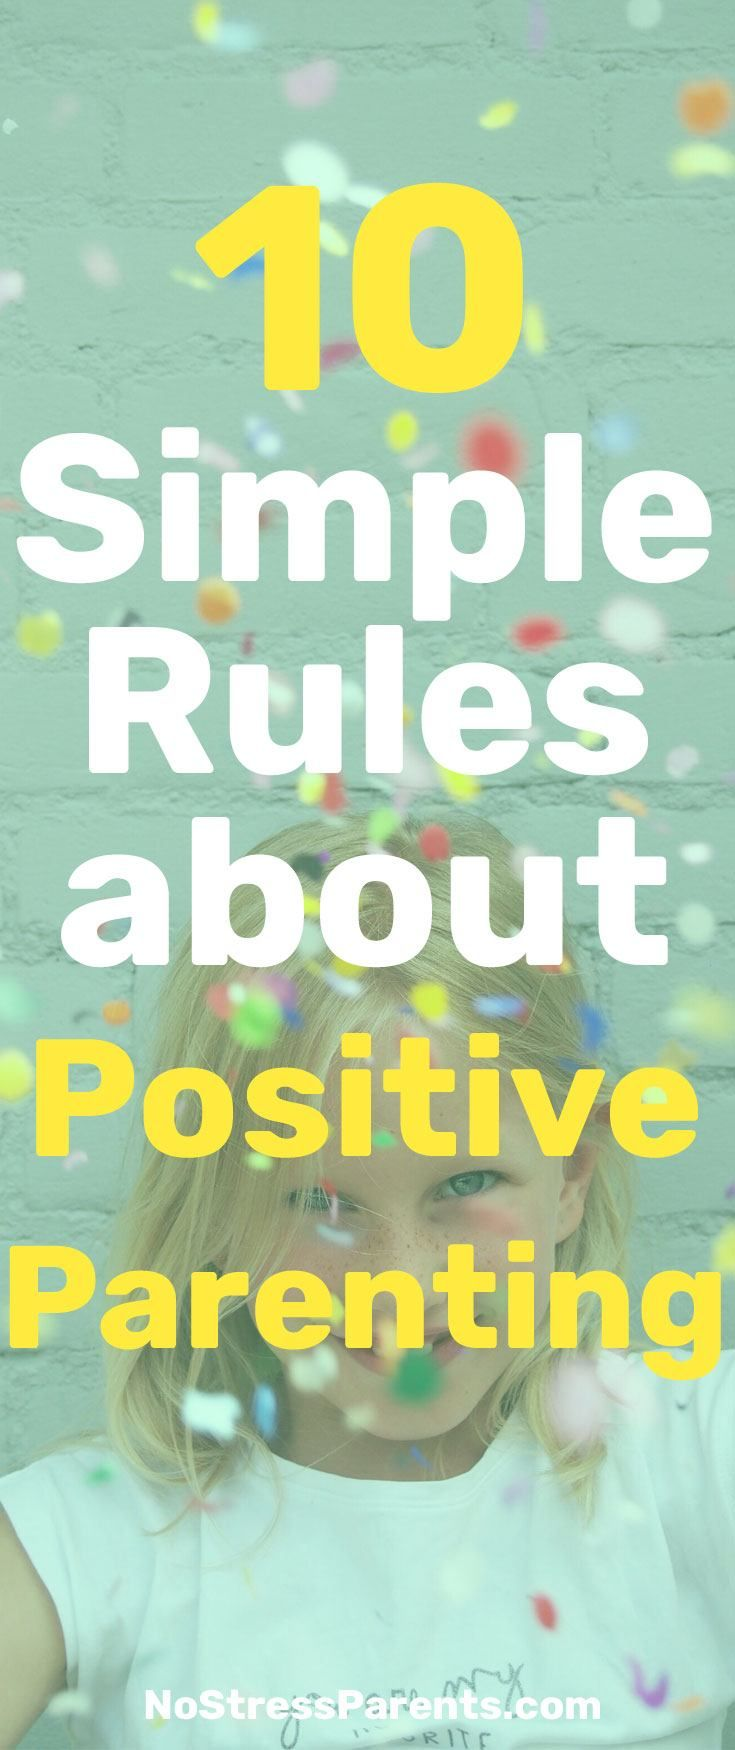 10 Simple Rules about Positive Parenting is a list of 10 important rules to keep in mind when nurturing a positive parenting approach at home.